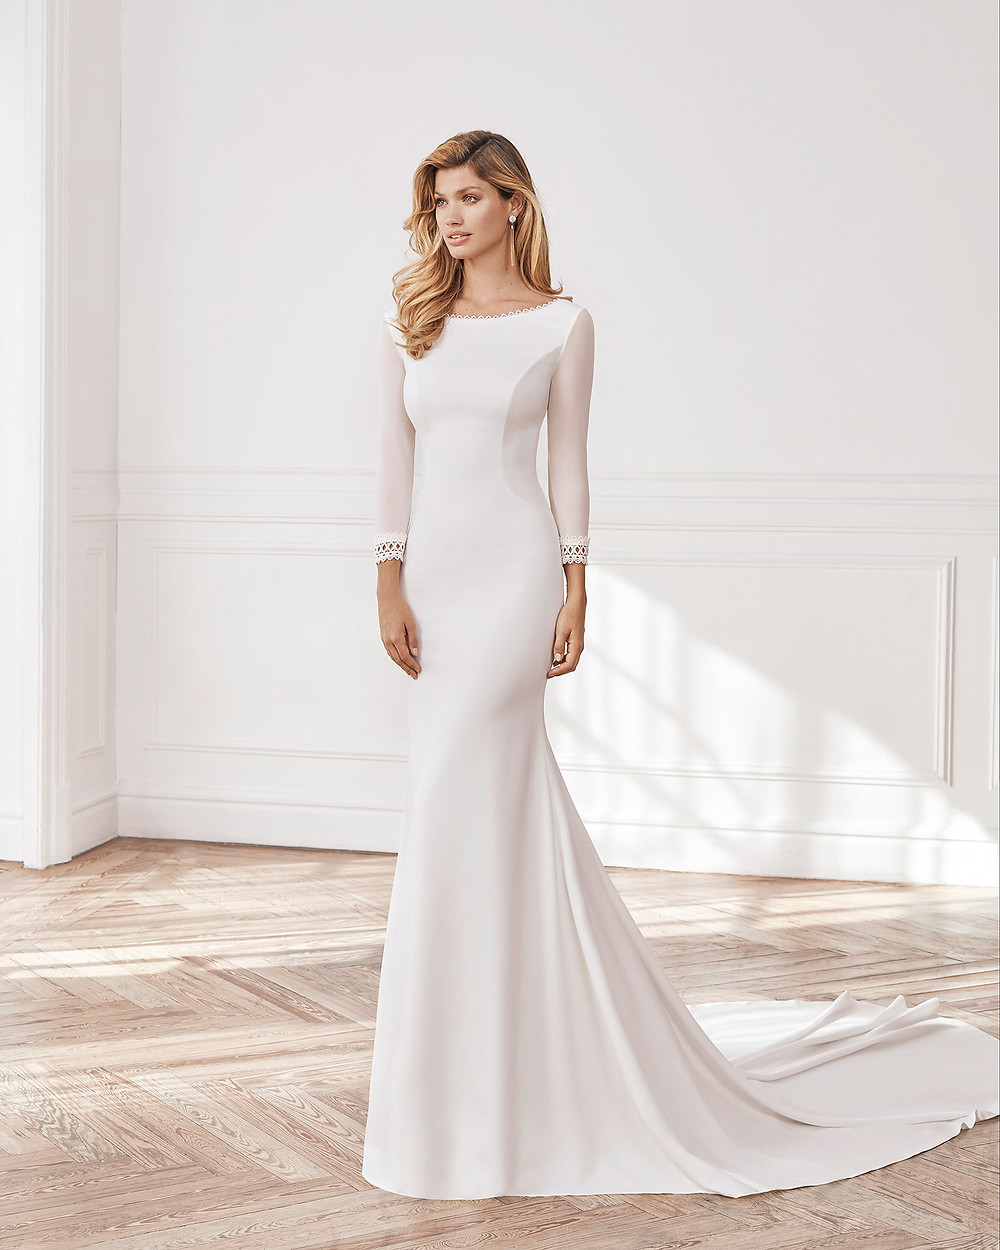 An Aire Barcelona 2020 simple crepe mermaid fit and flare wedding dress with long sleeves and a train